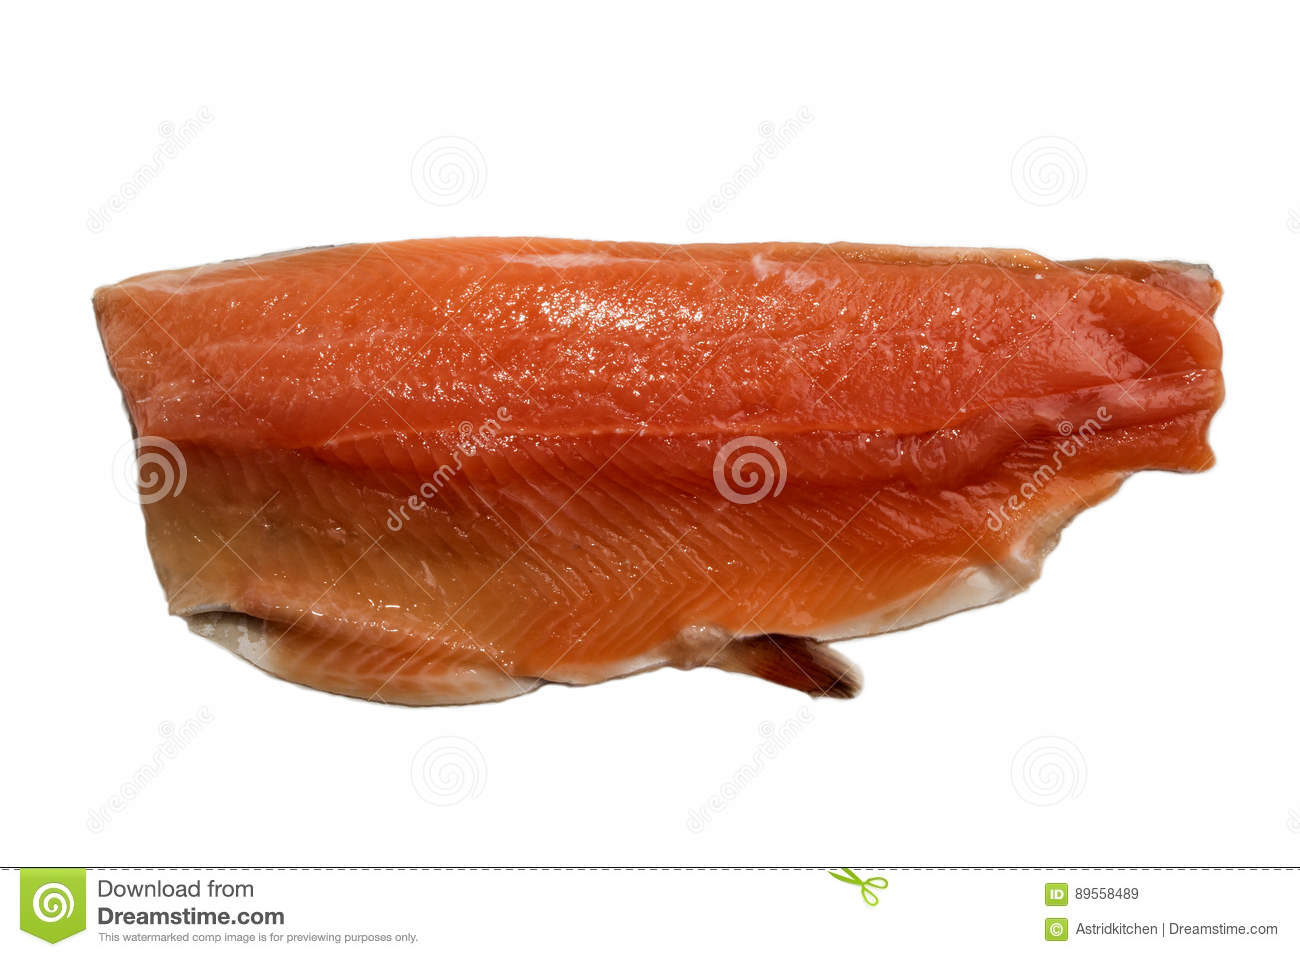 Irish sea trout fillet, isolated on white